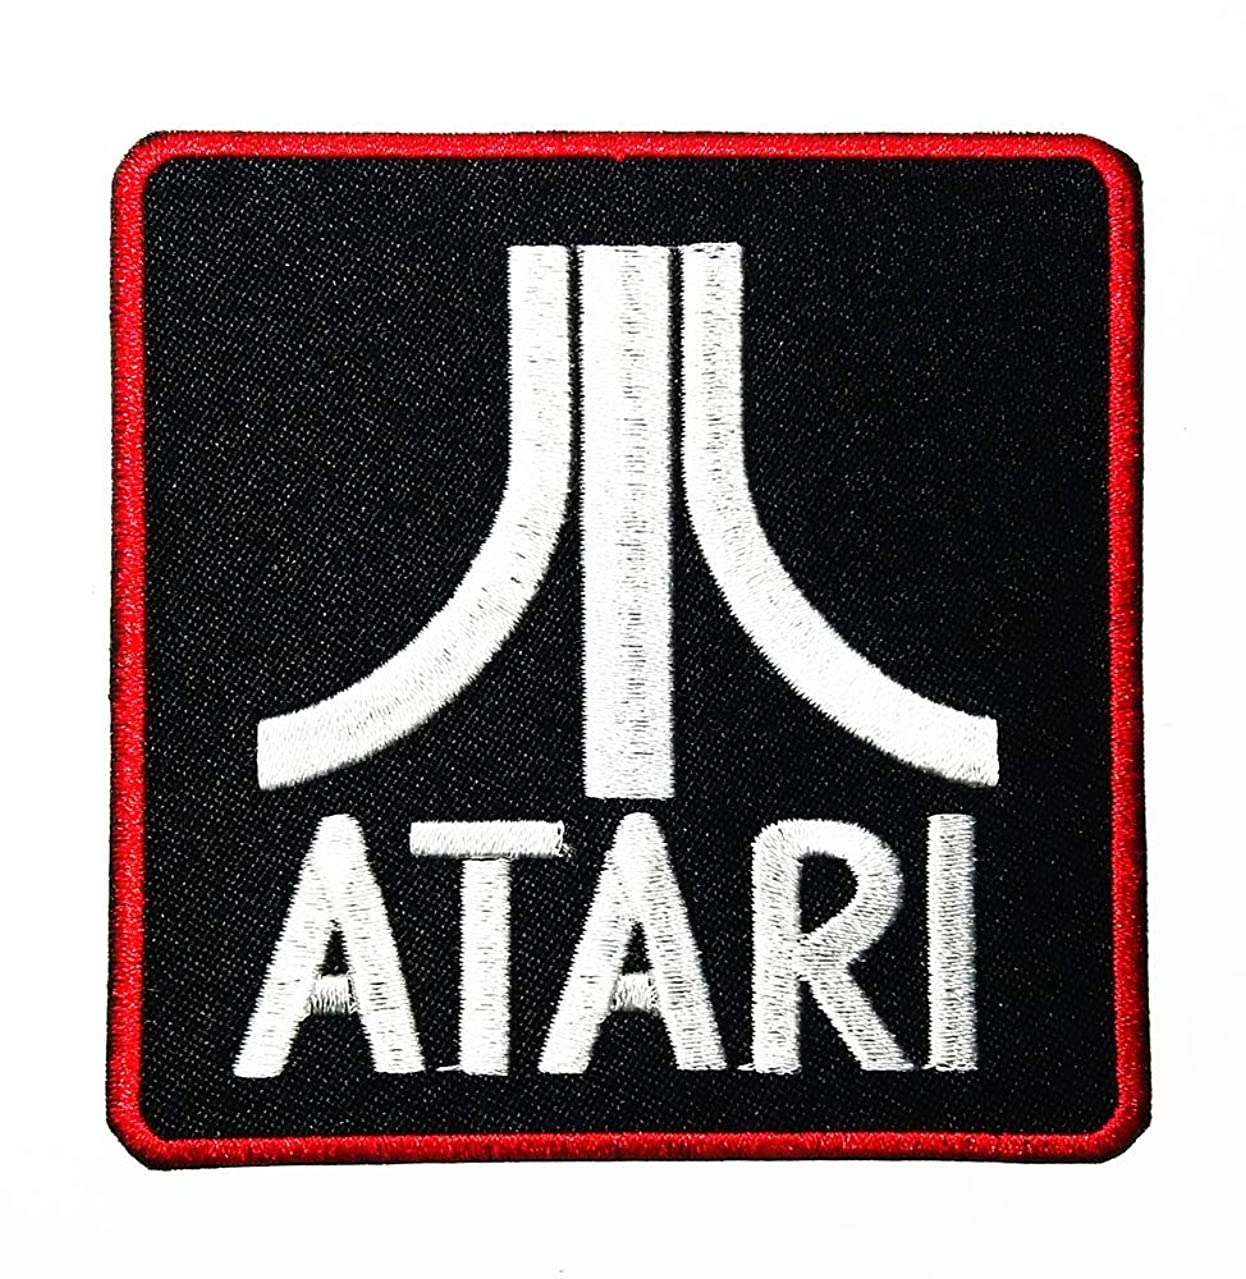 Video Game Player Home appliances Logo Patch Embroidered Sew Iron On Patches Badge Bags Hat Jeans Shoes T-Shirt Applique